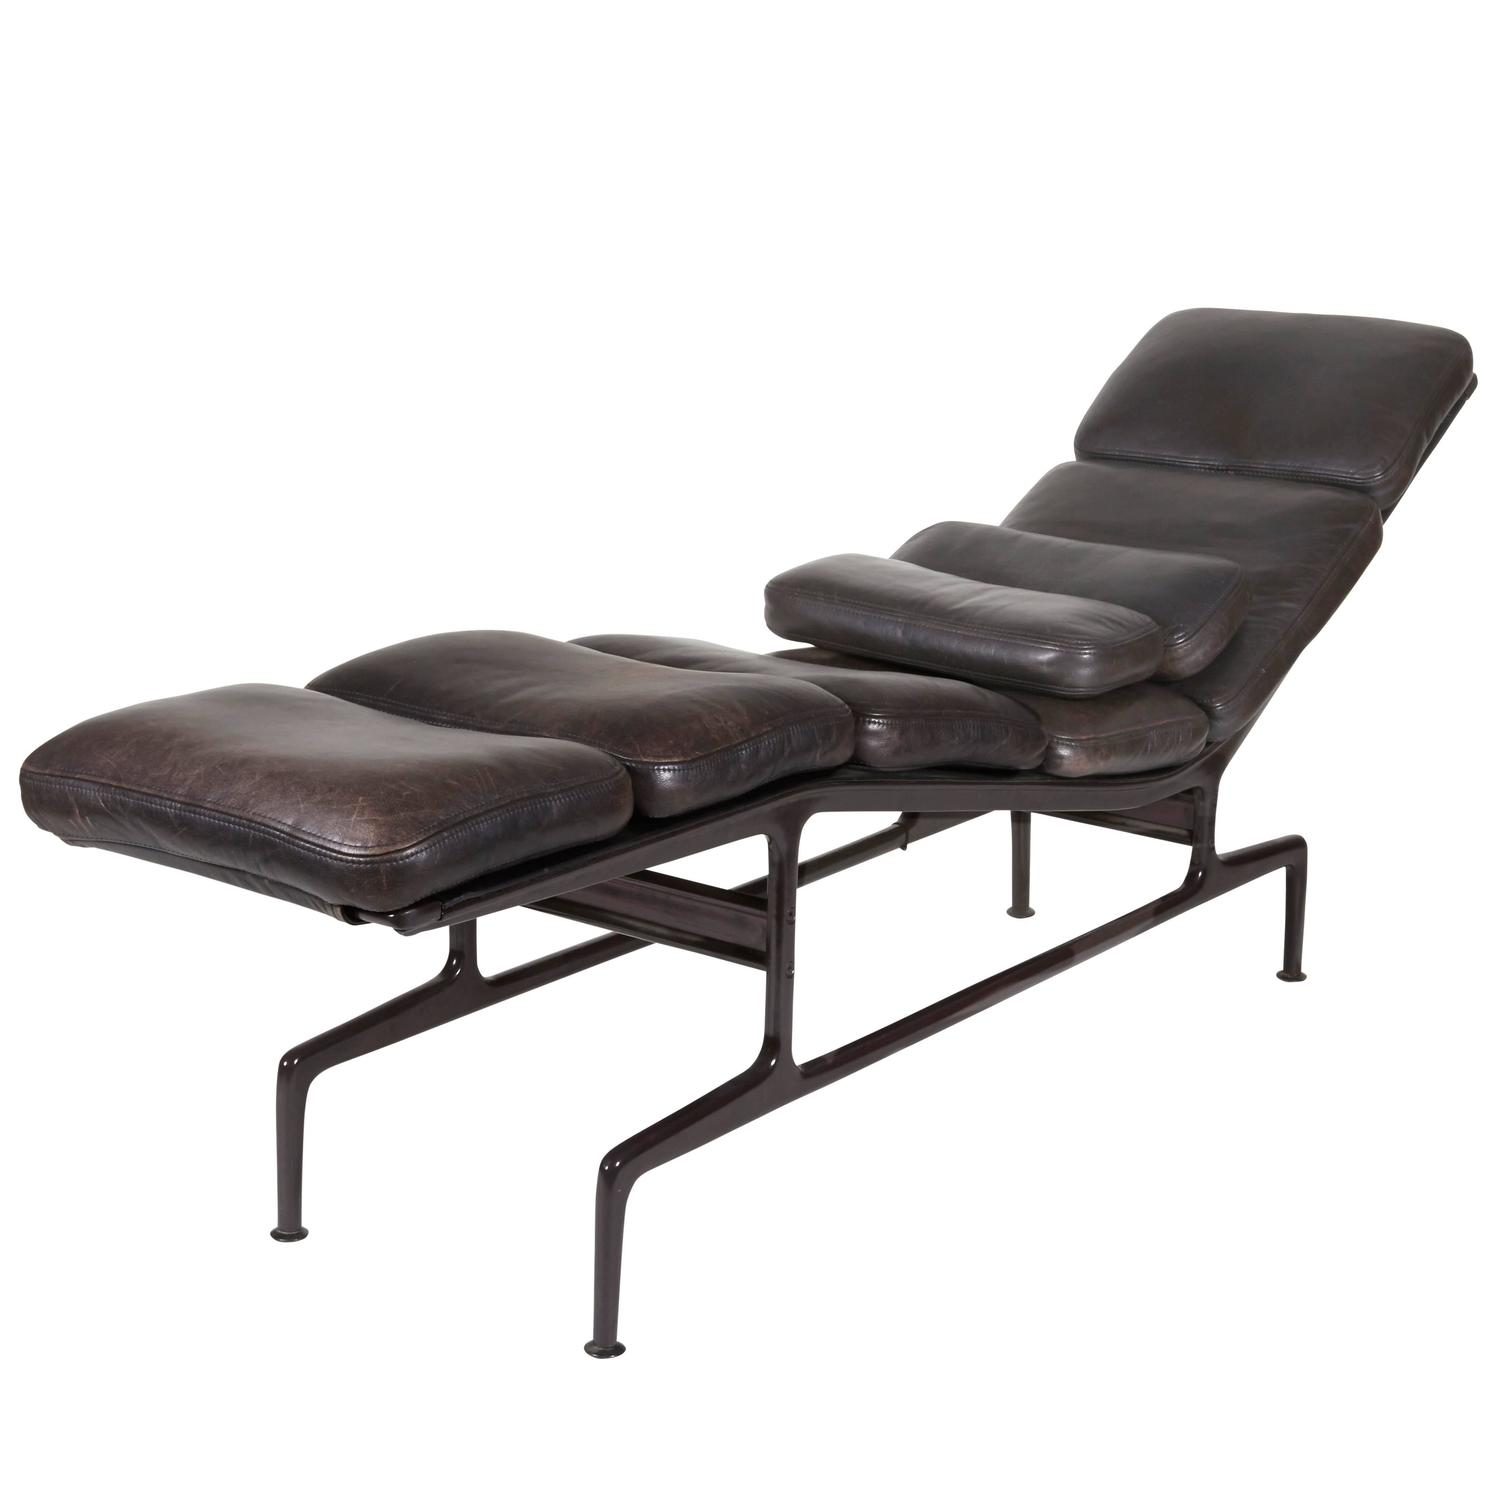 Billy wilder chaise by charles and ray eames for sale at for Chaise charles eames ebay